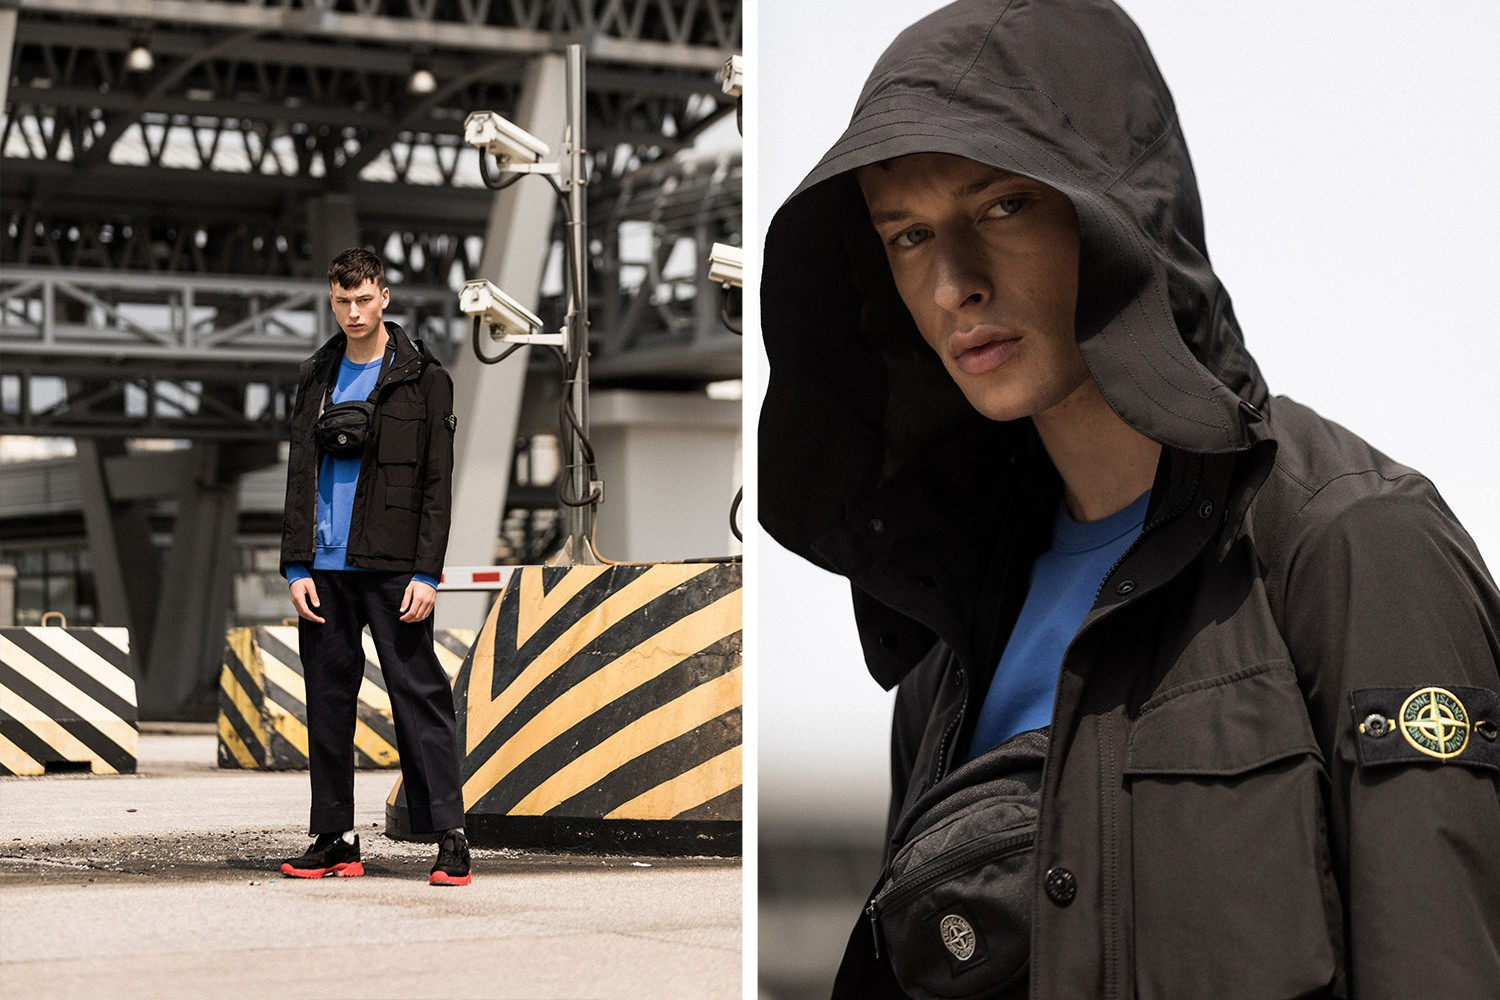 Stone Island Spring/Summer 2019 Collection